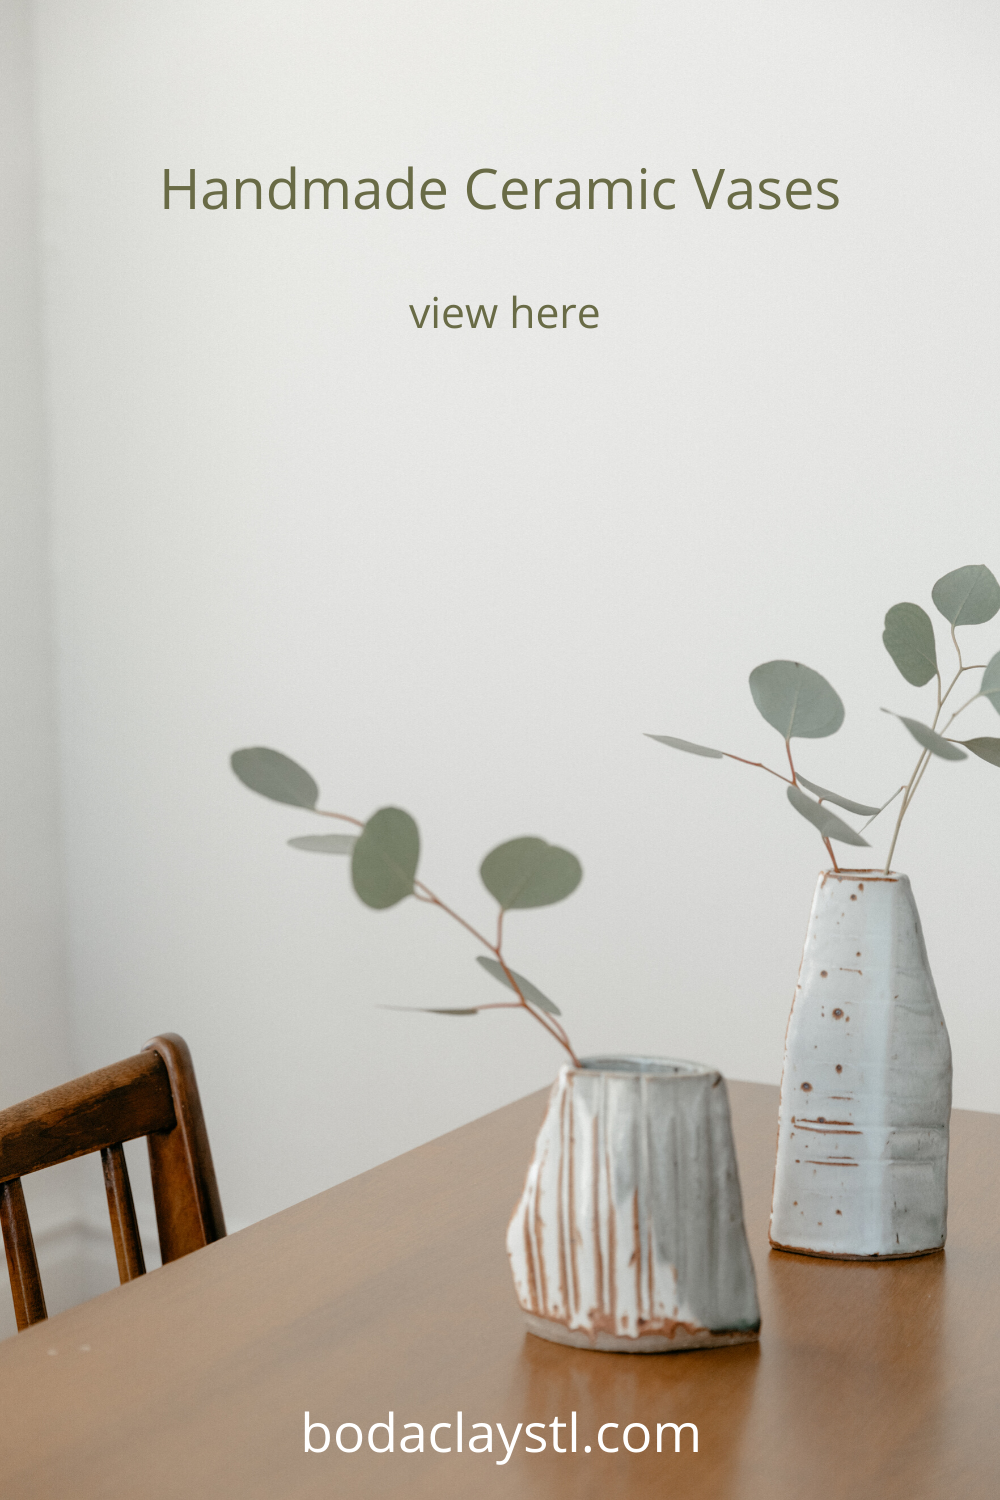 Our handmade ceramic vases make wonderful home decor for rustic or modern spaces. Display fresh or dried blooms to enrich your space. Bud vases are available now. #handmadevase #handmadeceramics